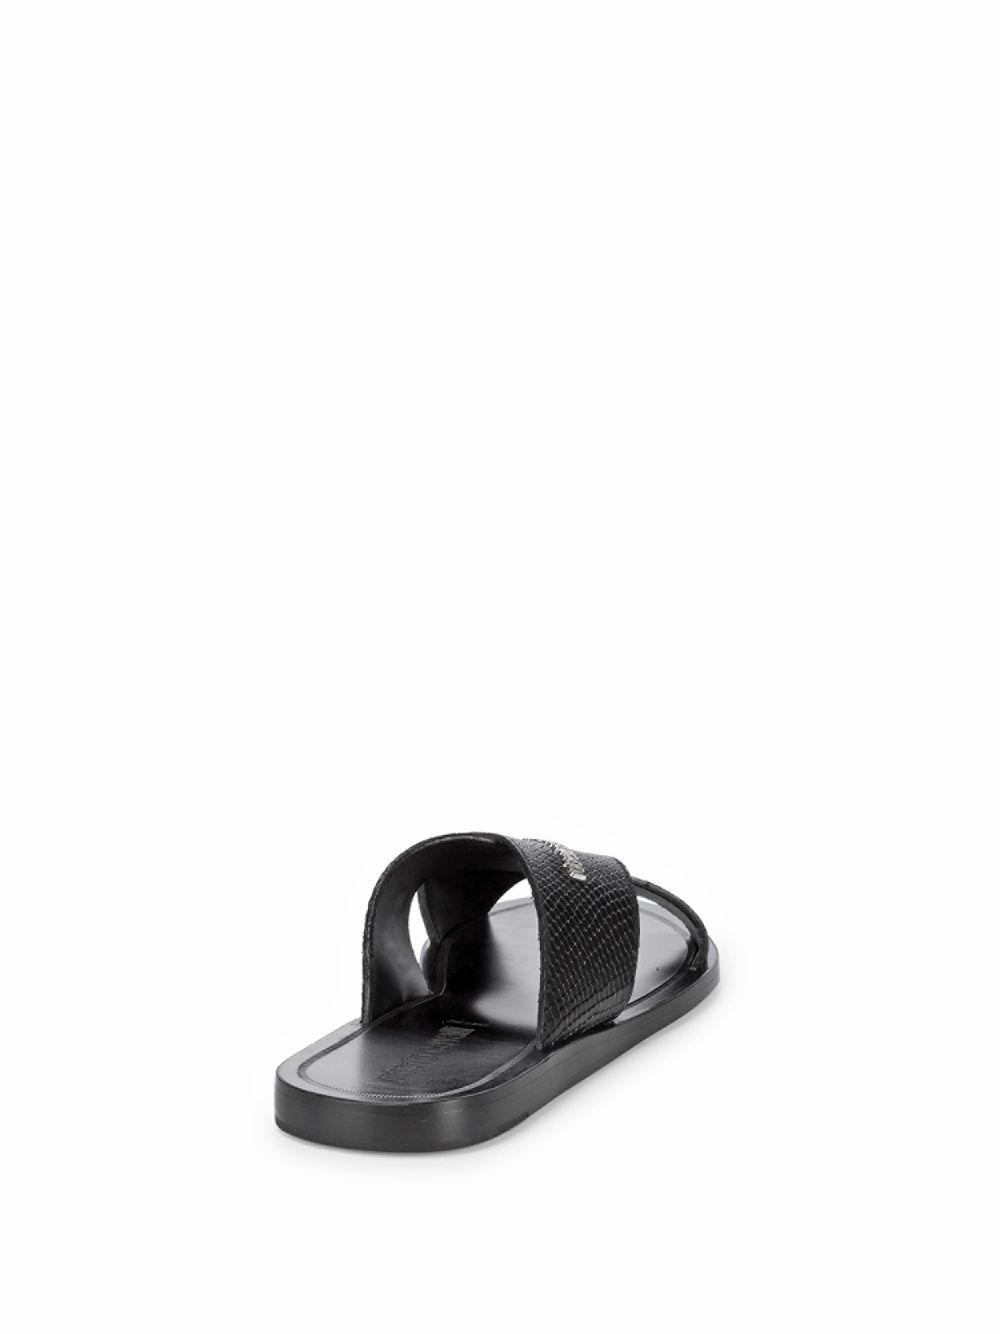 1ce685dcd8 Lyst - Roberto Cavalli Cross Band Leather Sandals in Black for Men - Save  65%